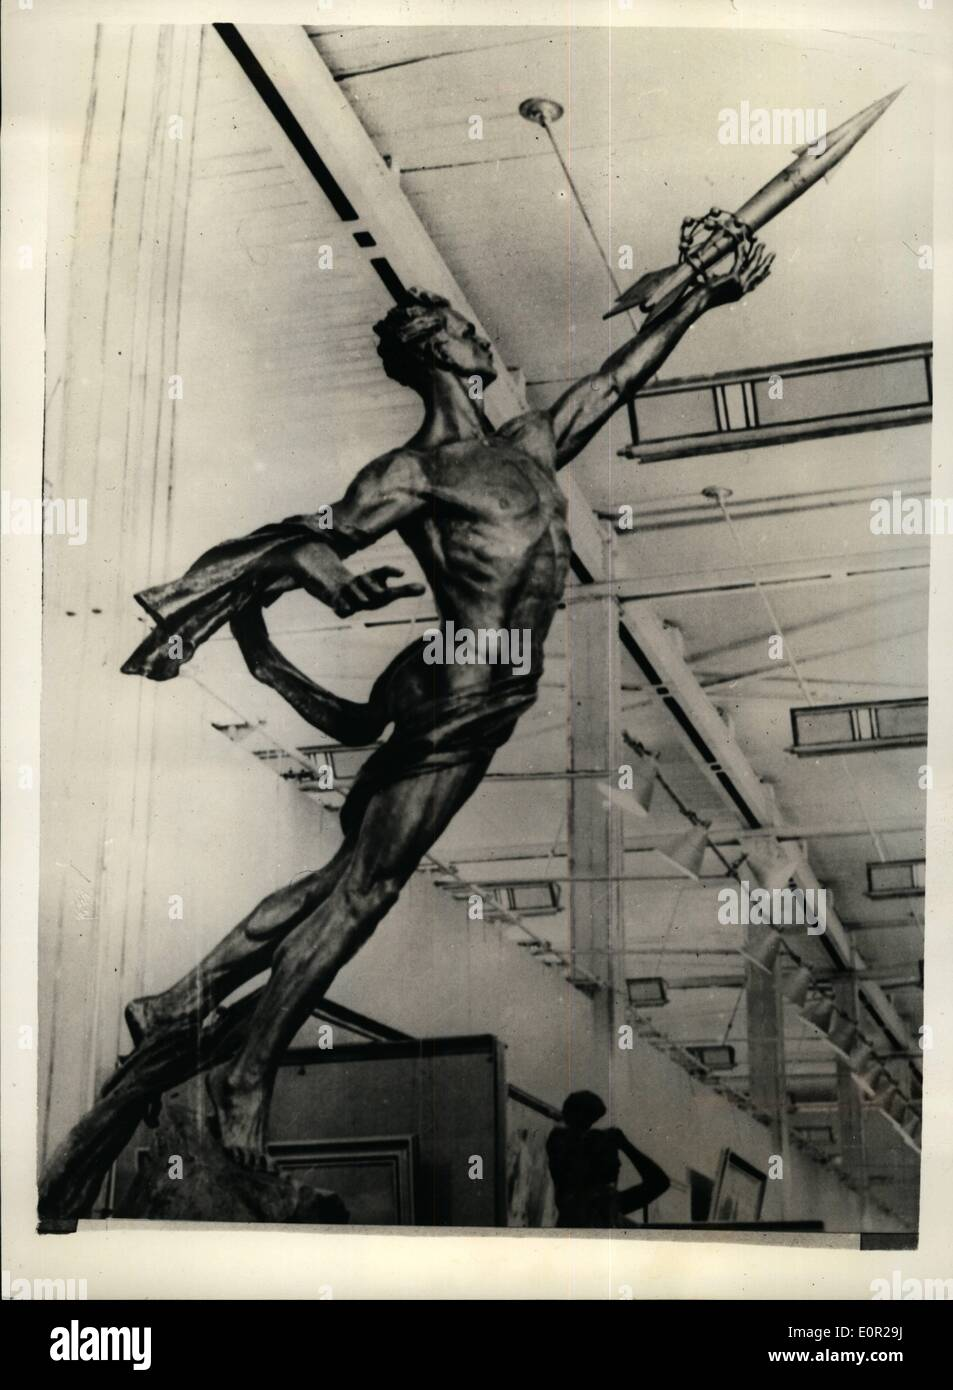 Dec. 12, 1957 - Modern art Soviet Version; ''To the stars'' is the name given to this piece of Sculpture by Russian artist G. Postinikow and it created plenty of interest at the ''All Union Art Exhibition held recently in Moscow. The figure illustrates the achievements of the country. with the outstreched arm holding a world encircling rocket. - Stock Image